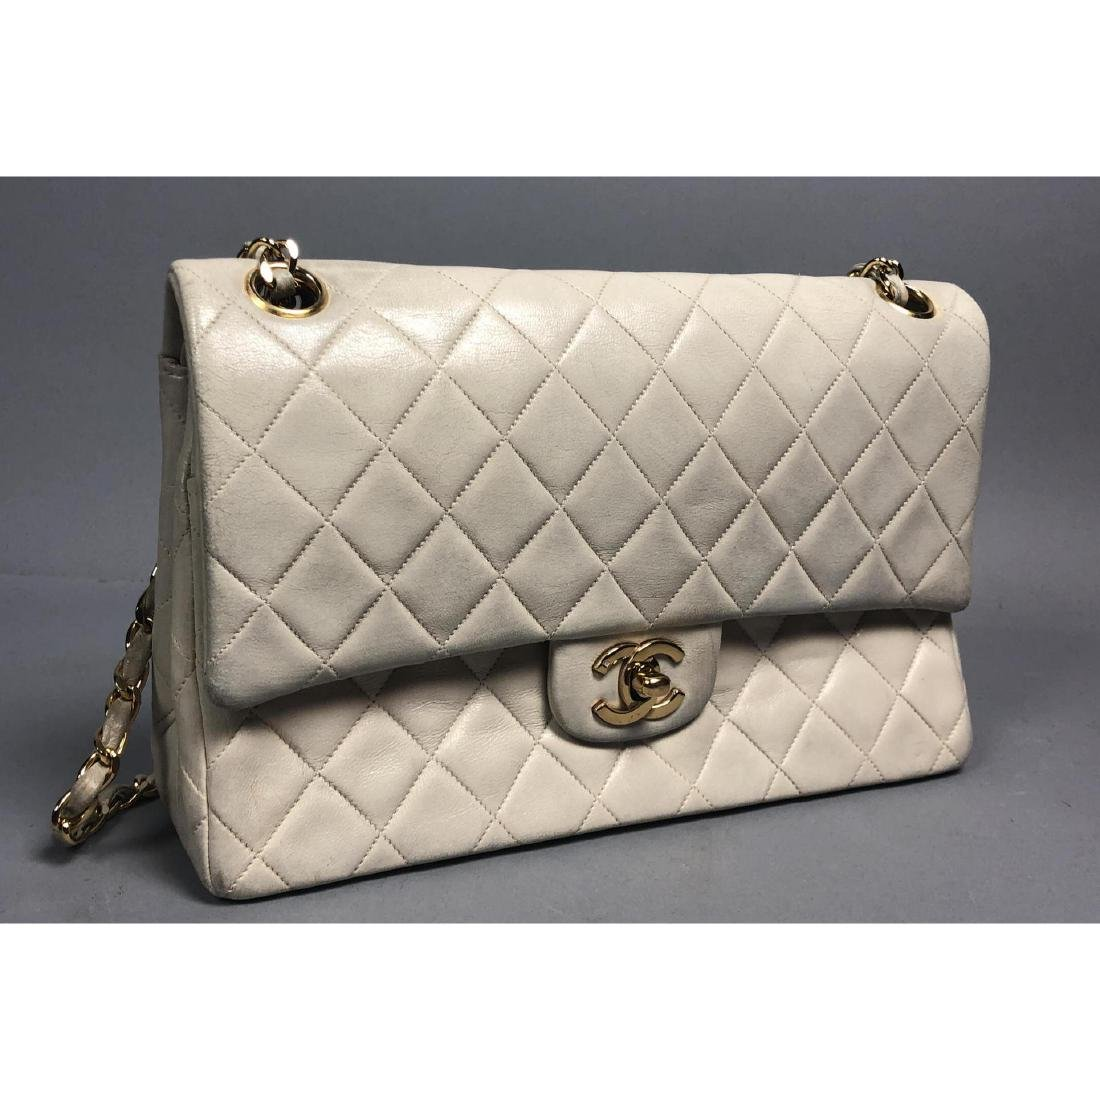 CHANEL Beige Leather Quilted Purse Hand Bag. Kid